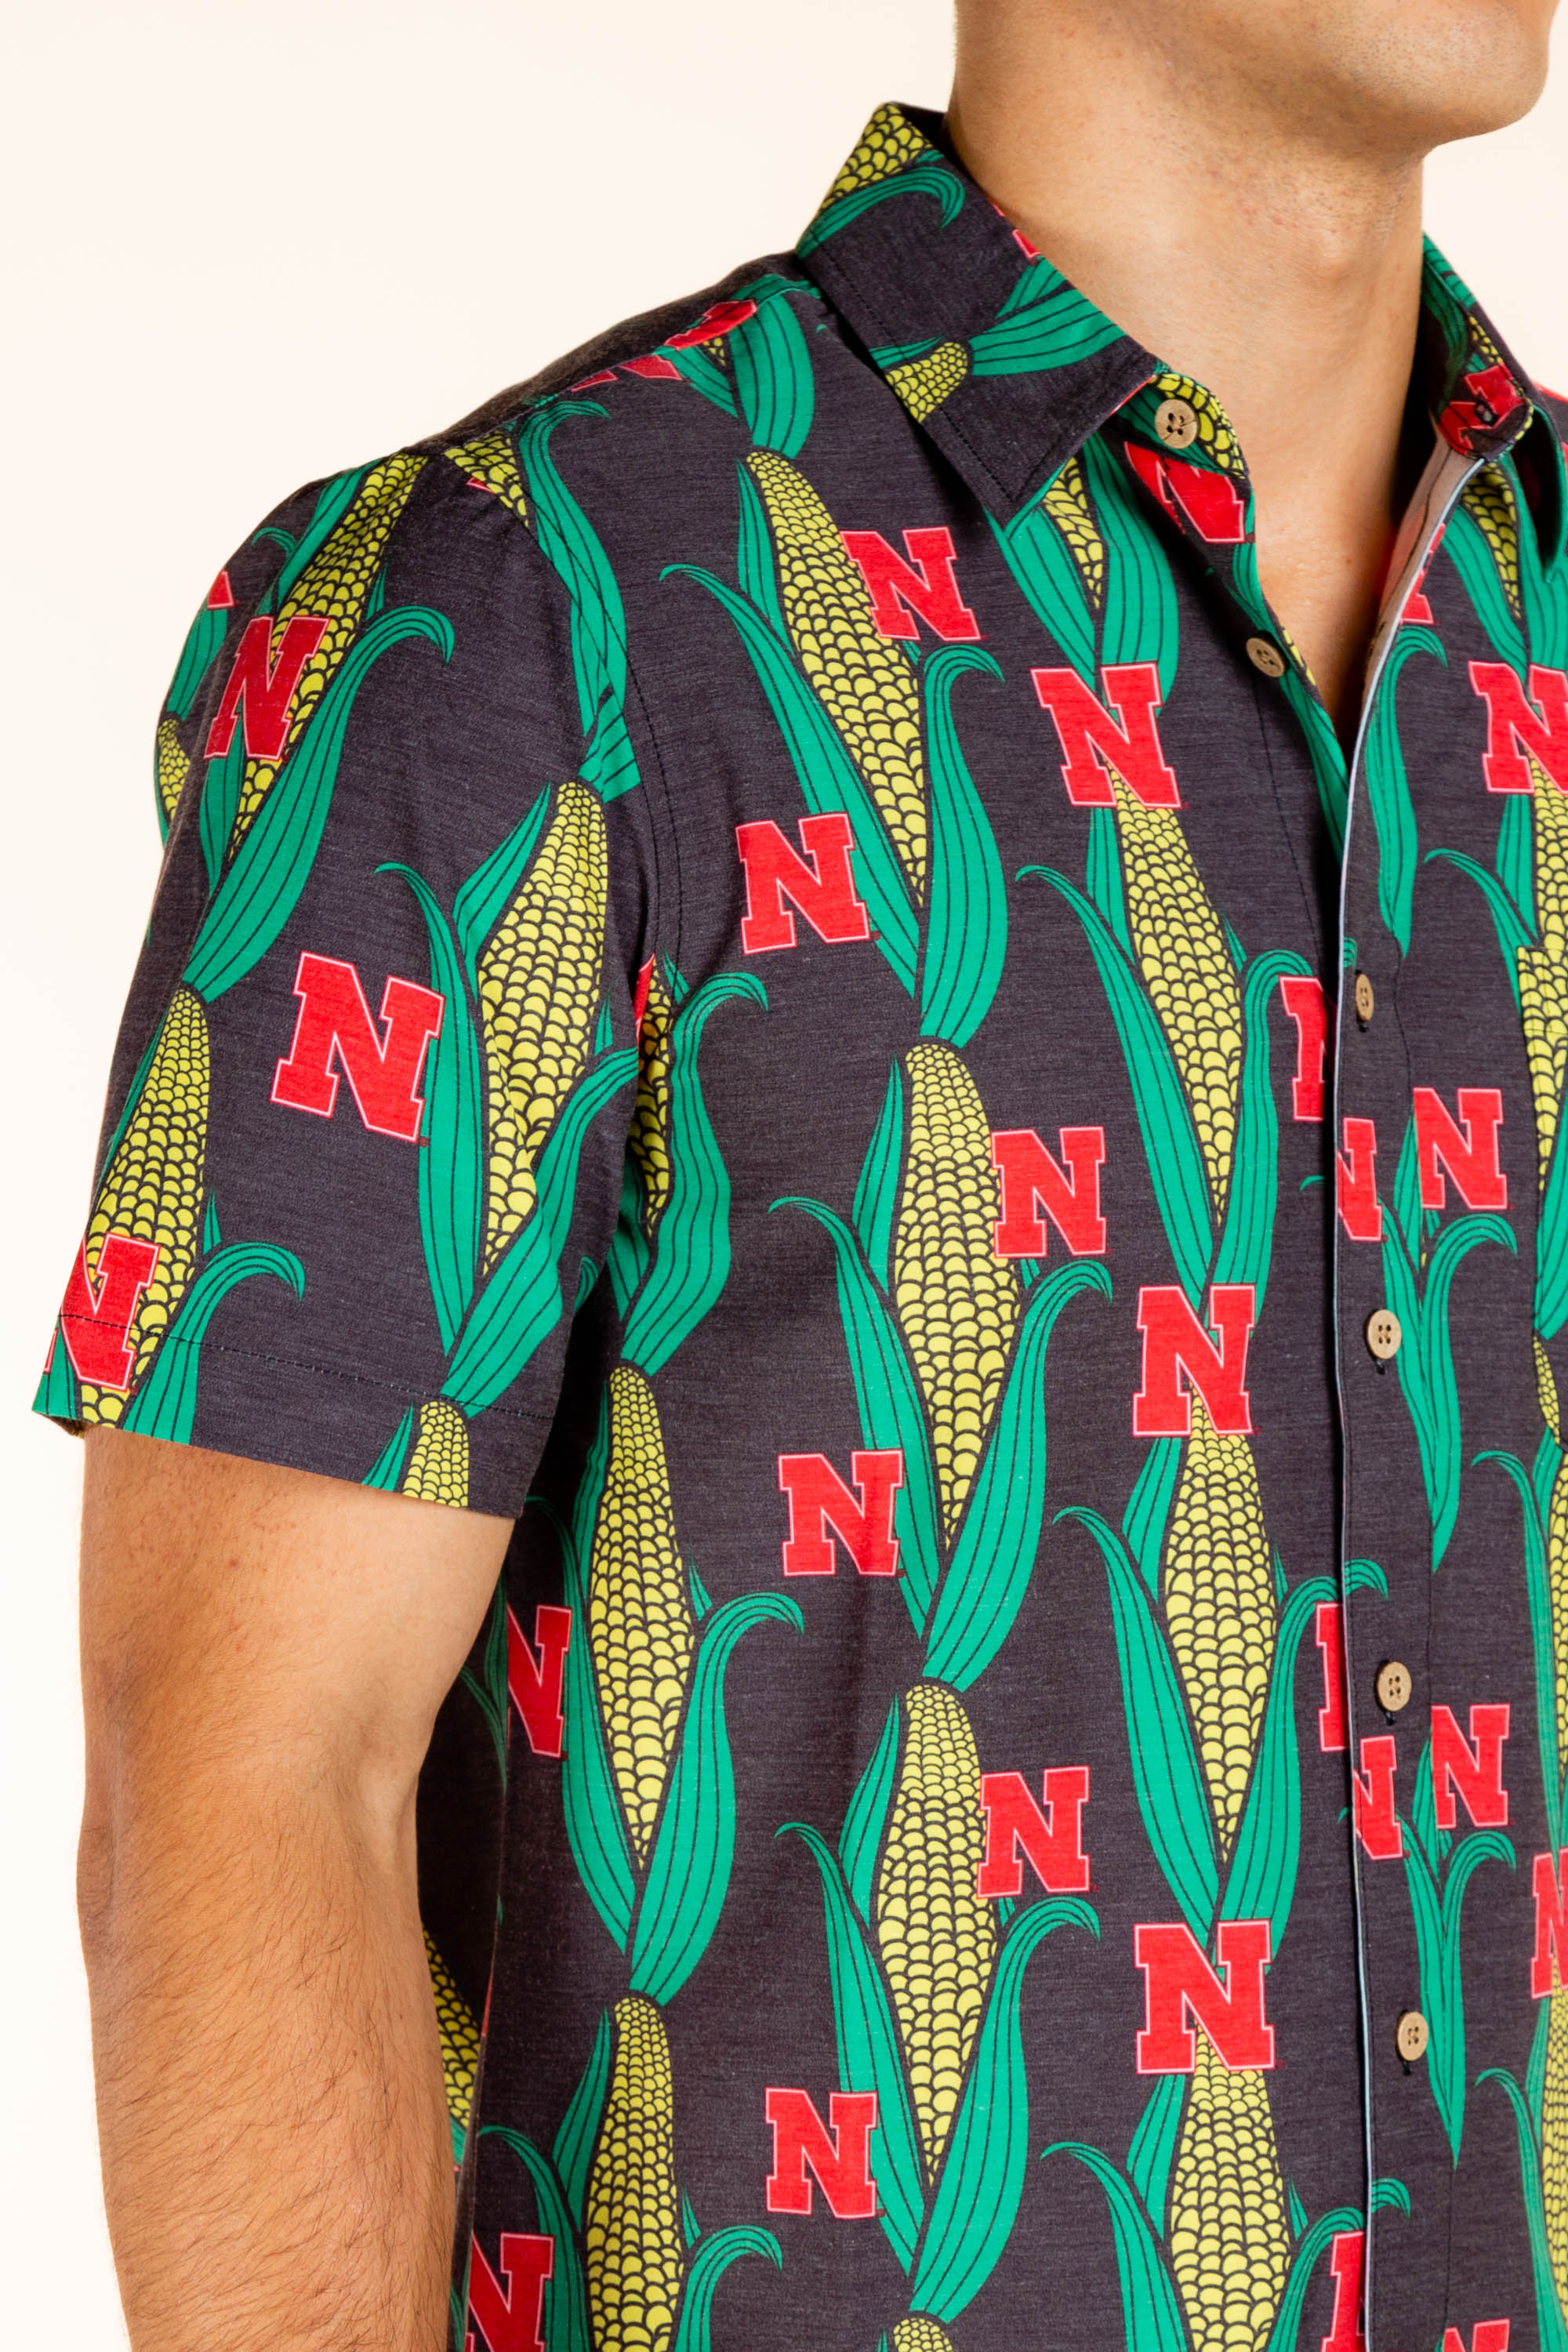 University of Nebraska Cornhuskers Party Shirt